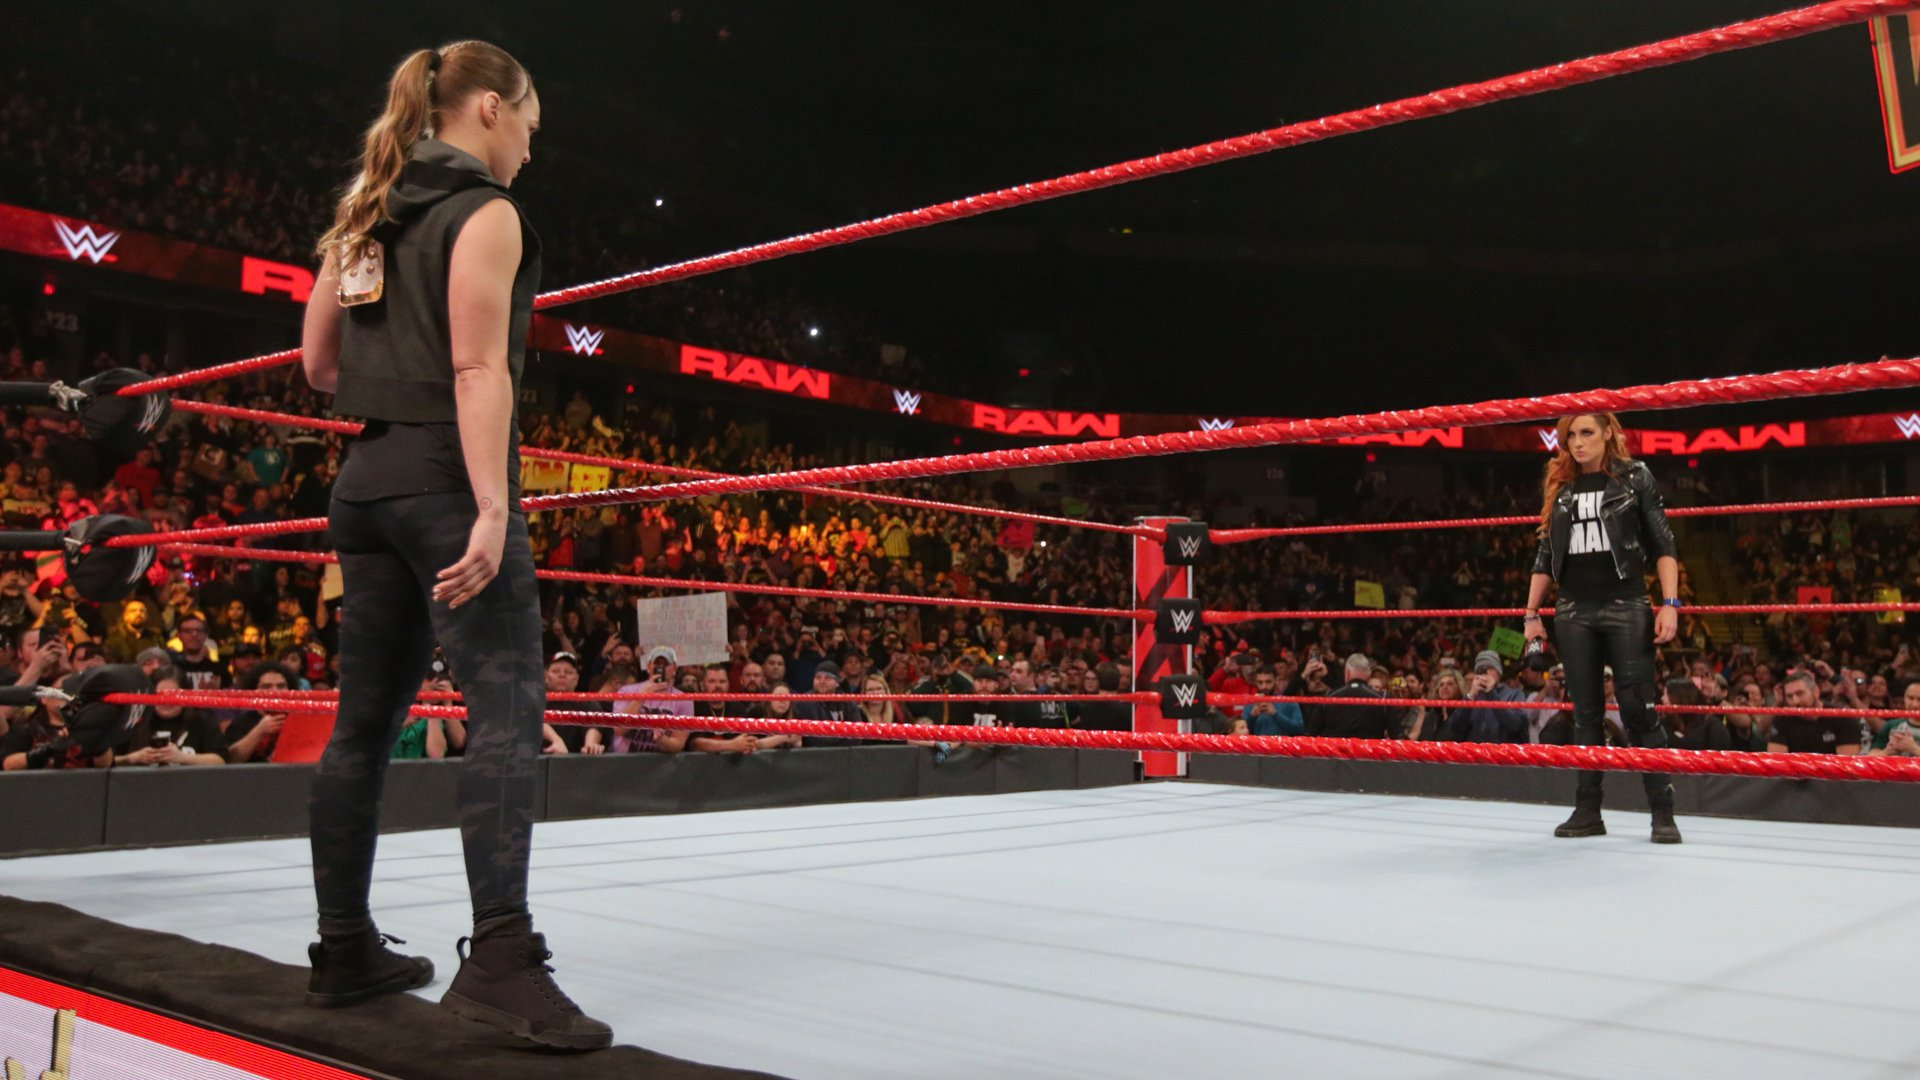 Suddenly, Raw Women's Champion Ronda Rousey hits the scene!